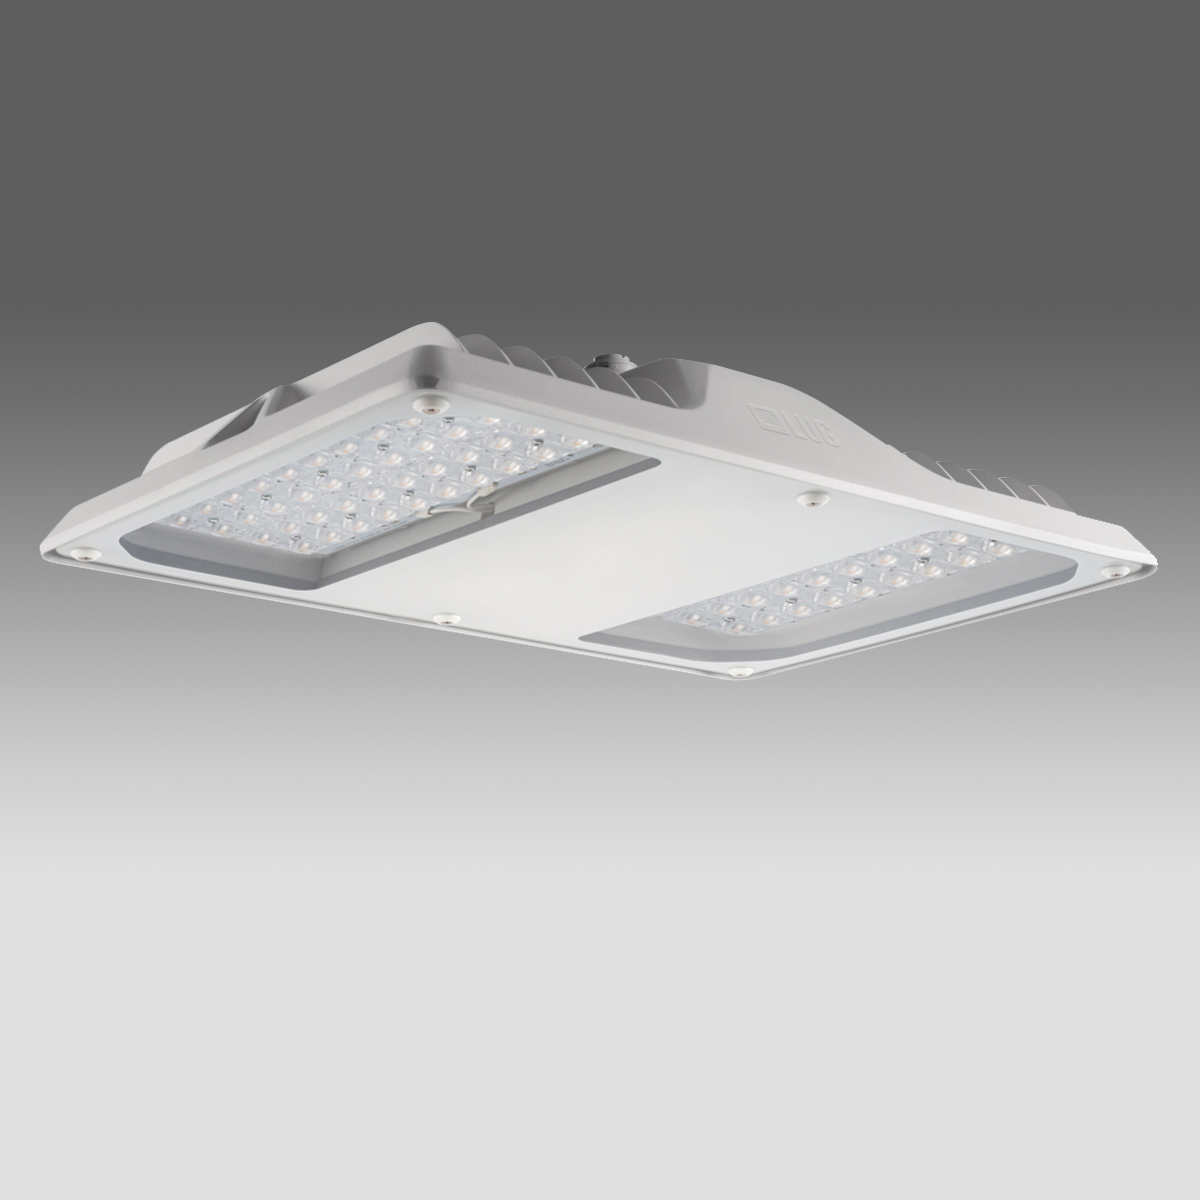 1 Stk Arktur Square PLUS LED 206W 24850lm/740 EVG IP65 110° grau LIG4251013